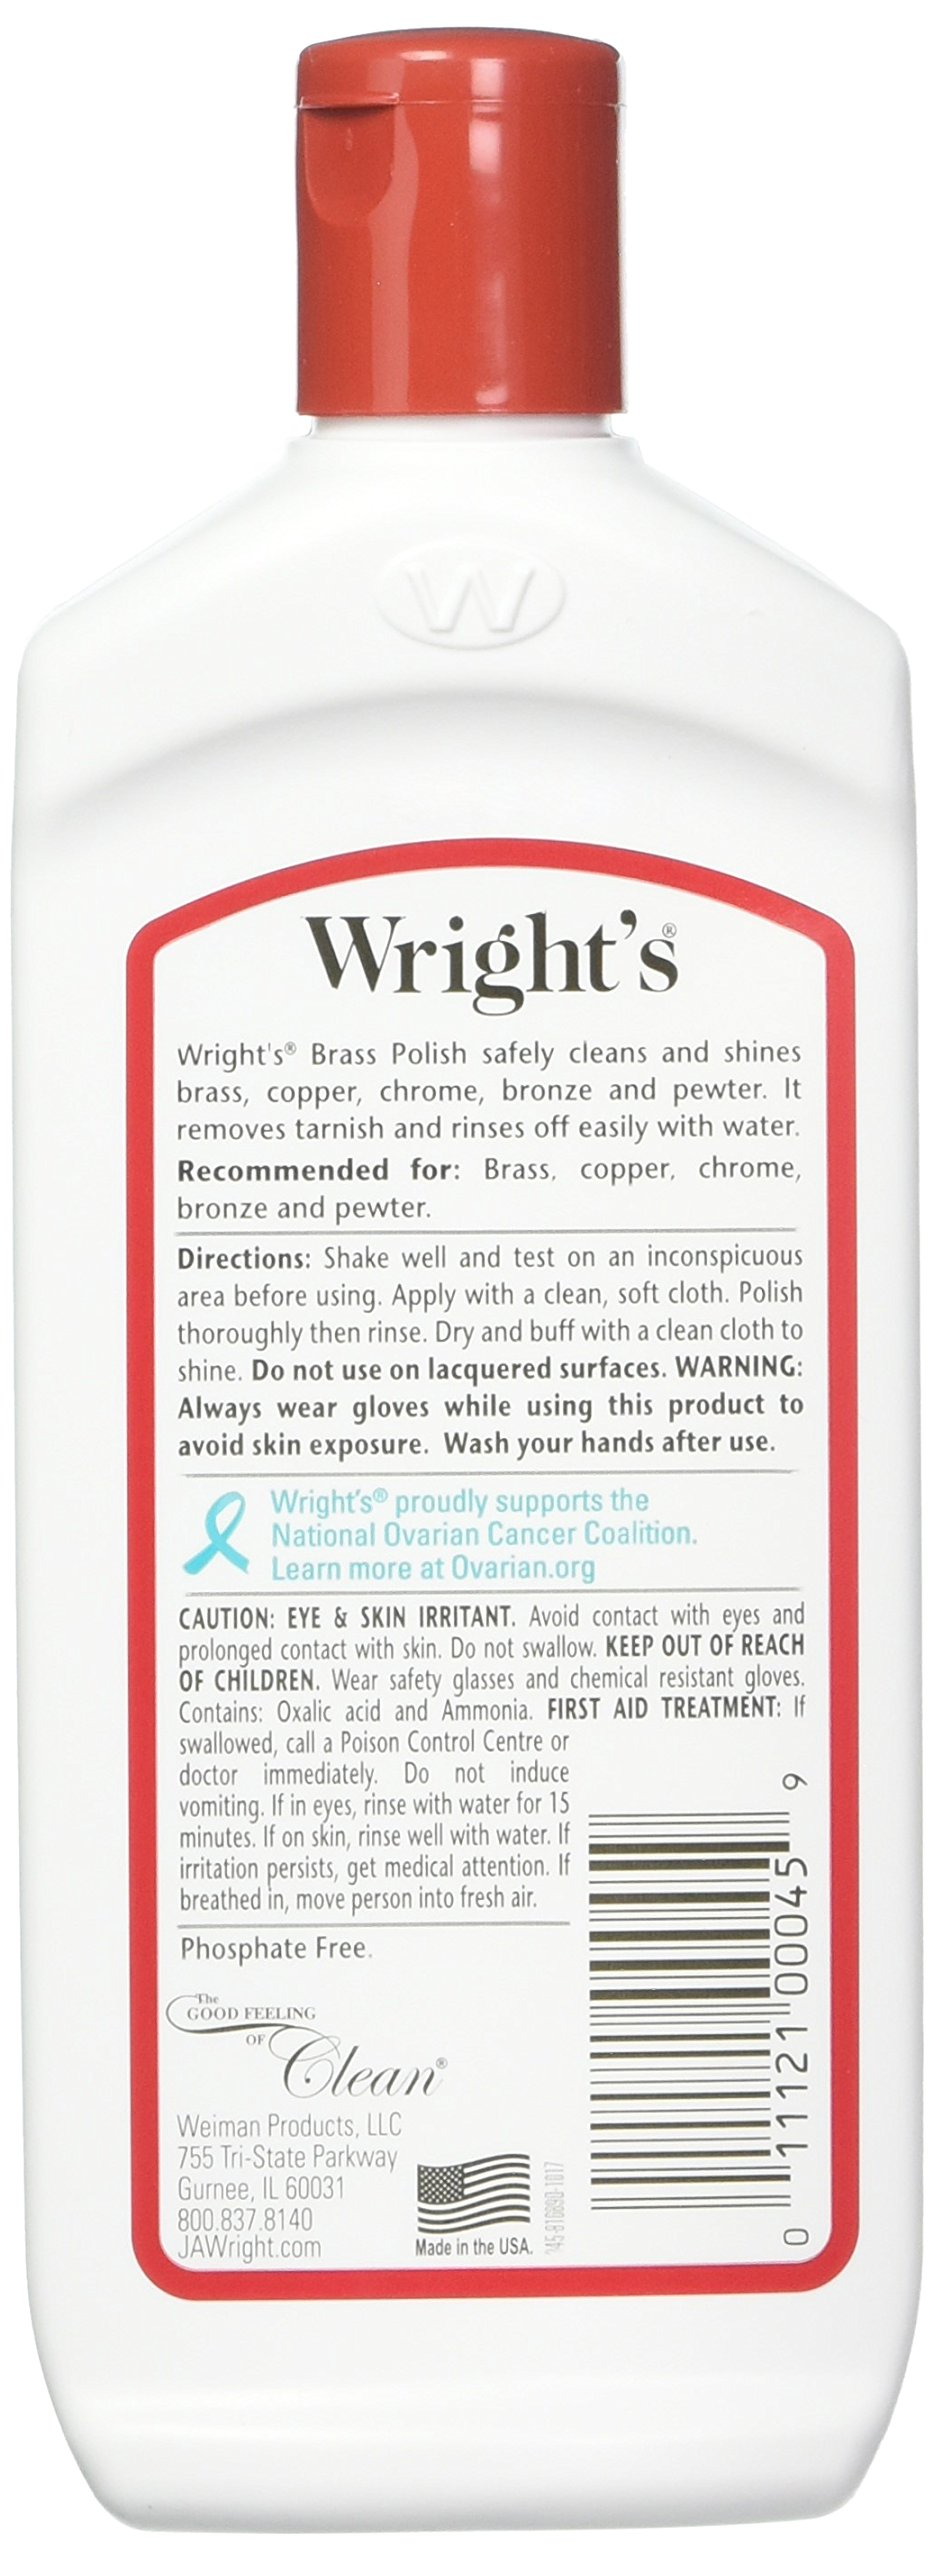 J A Wright Brass Polish Cleaner, 8 Ounce, 993188 -- 6 per case. by J A Wright (Image #2)